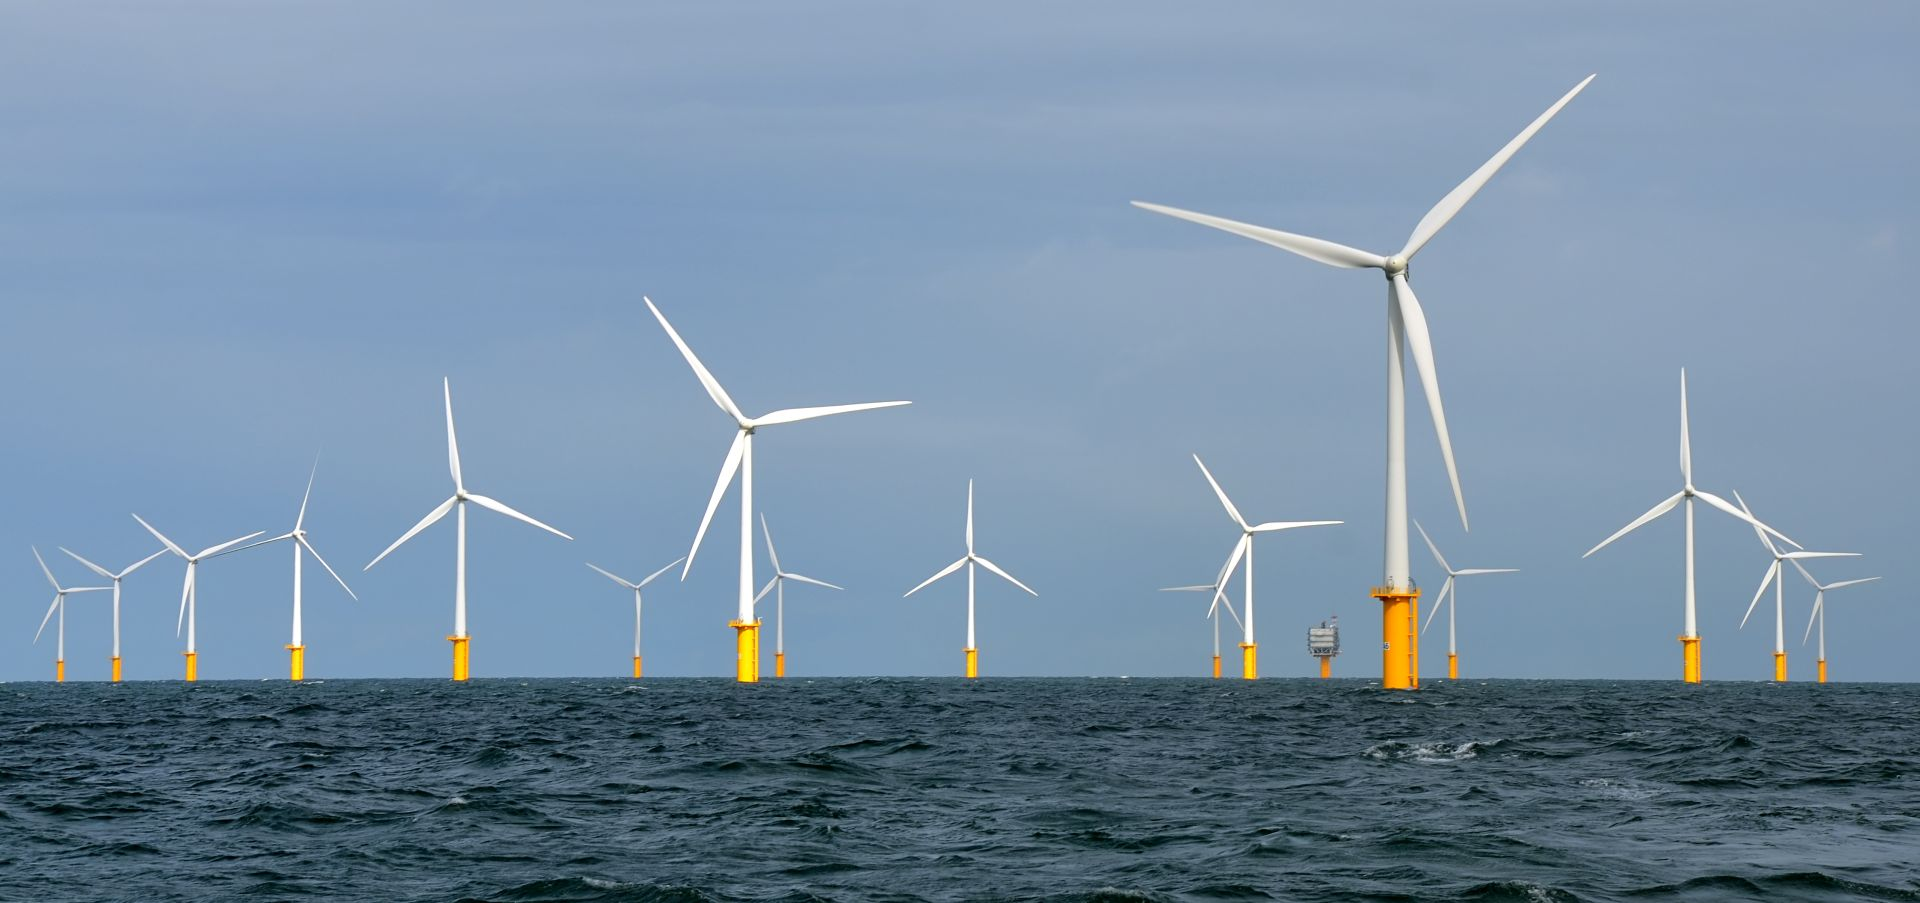 The Belwind turbines with a yellow base in the waves and a blue sky above